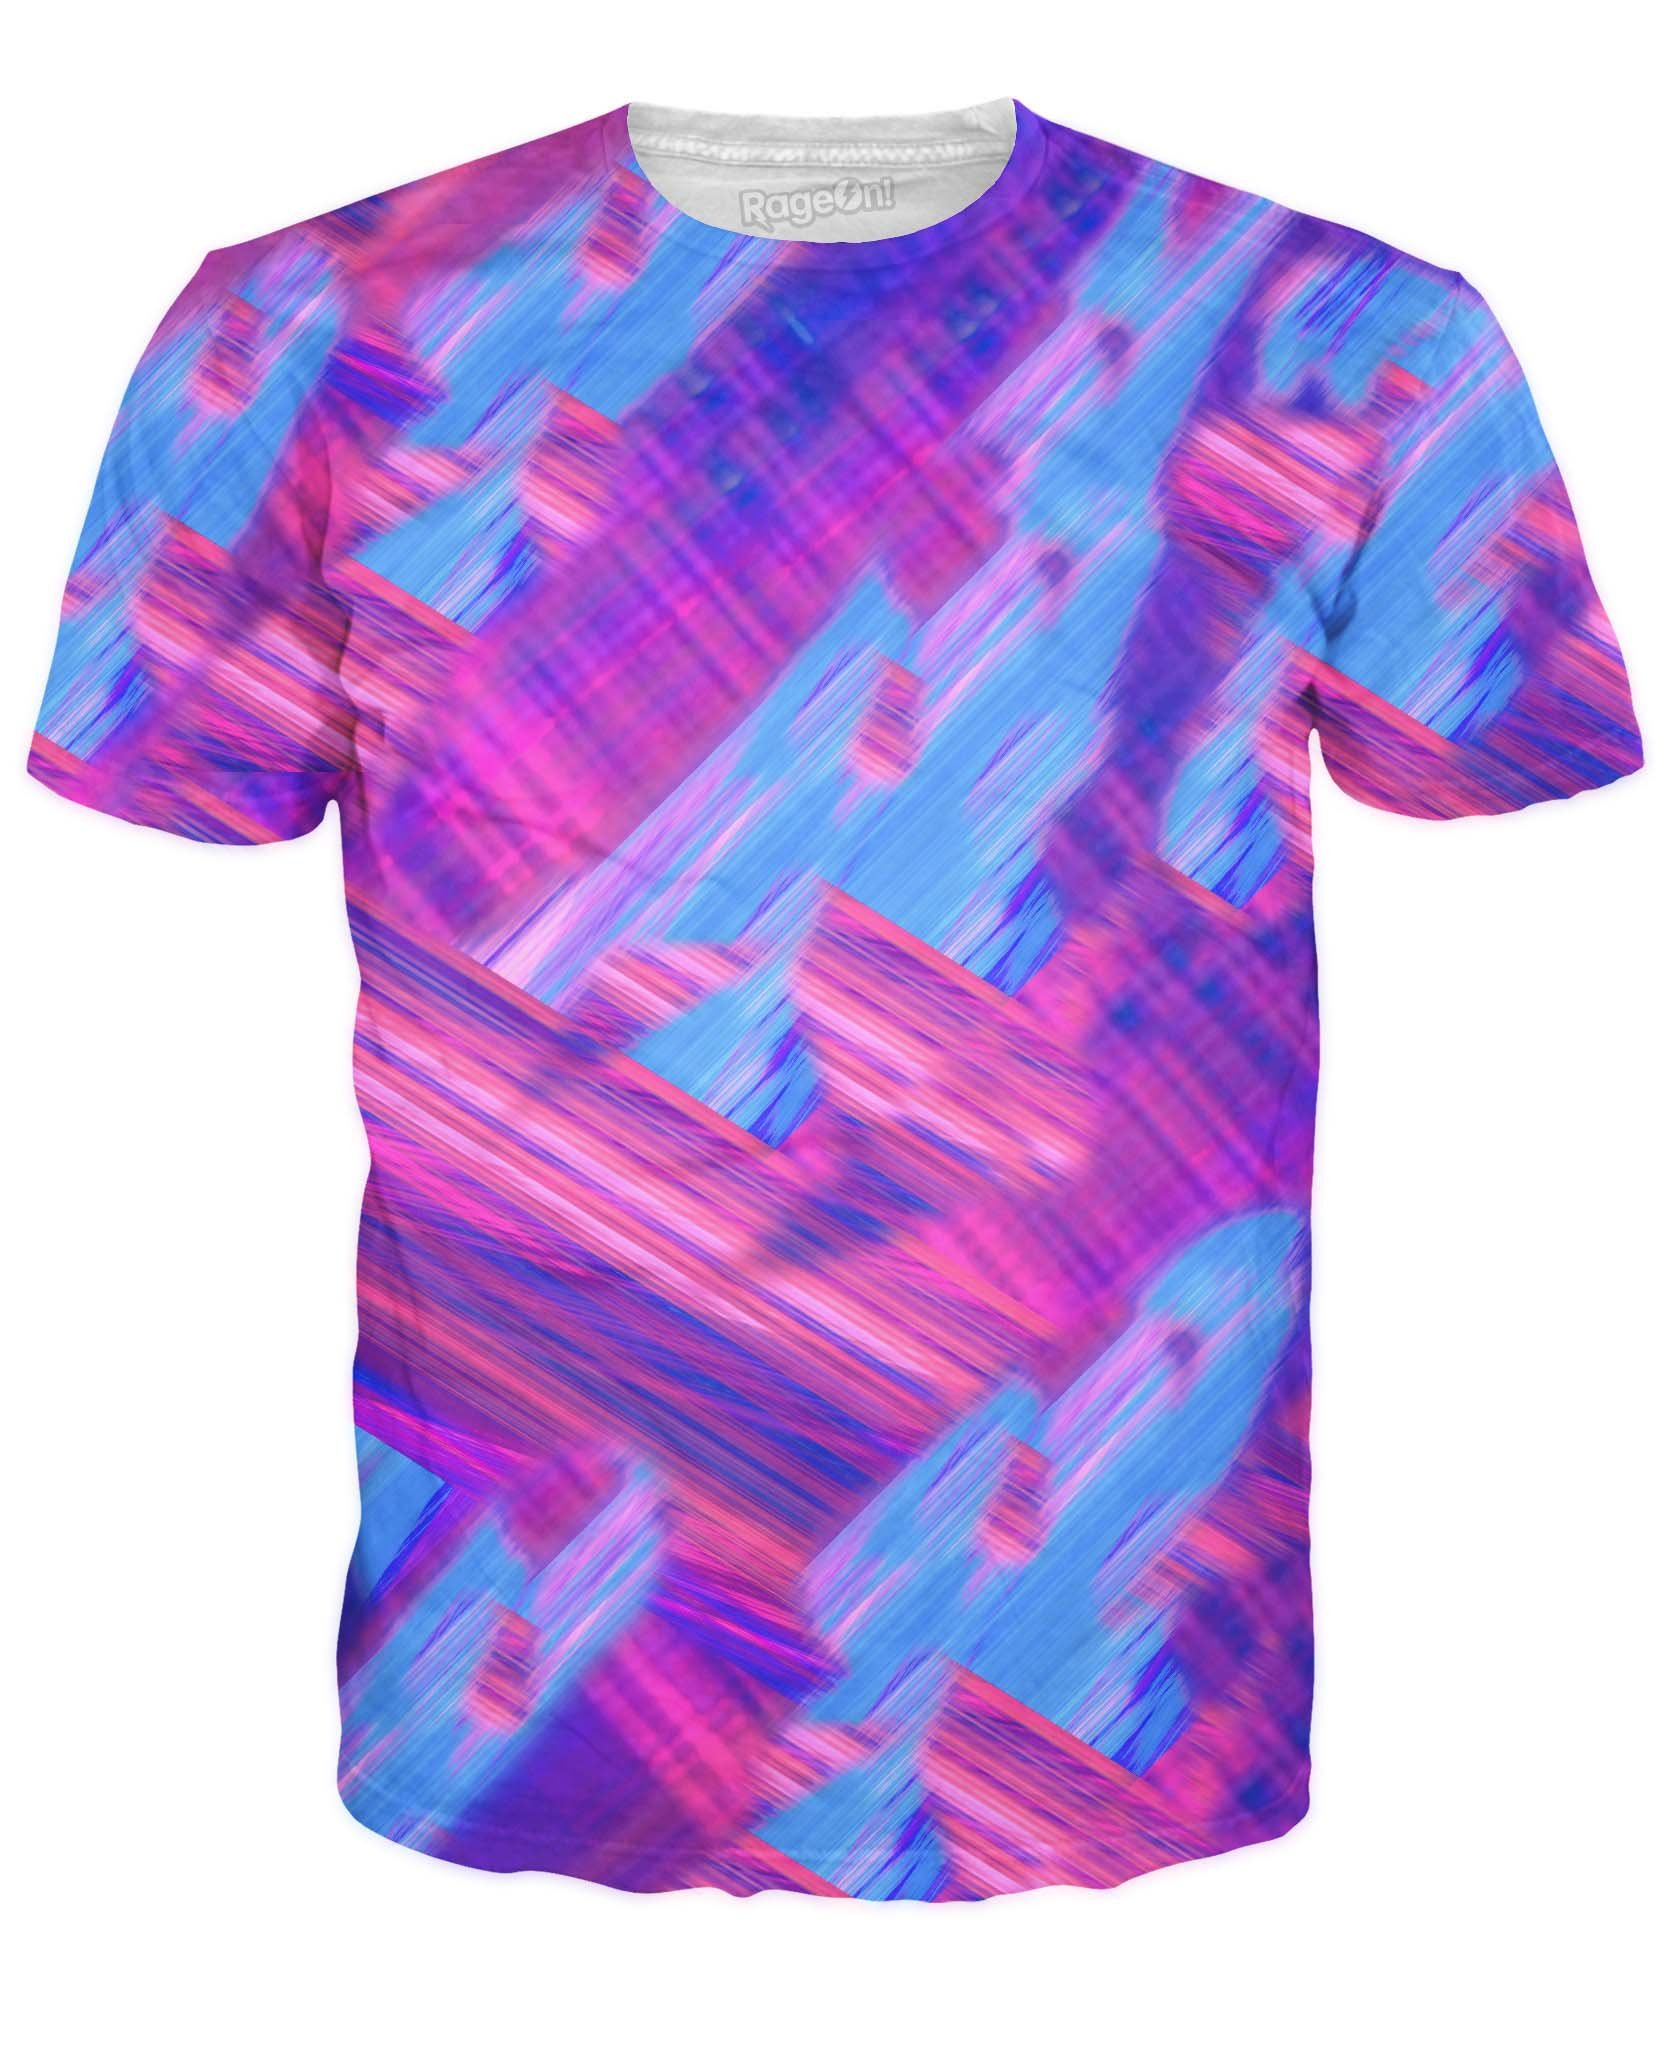 RageOn Men's Glaciers T-Shirt Neon Pink Purple Blue